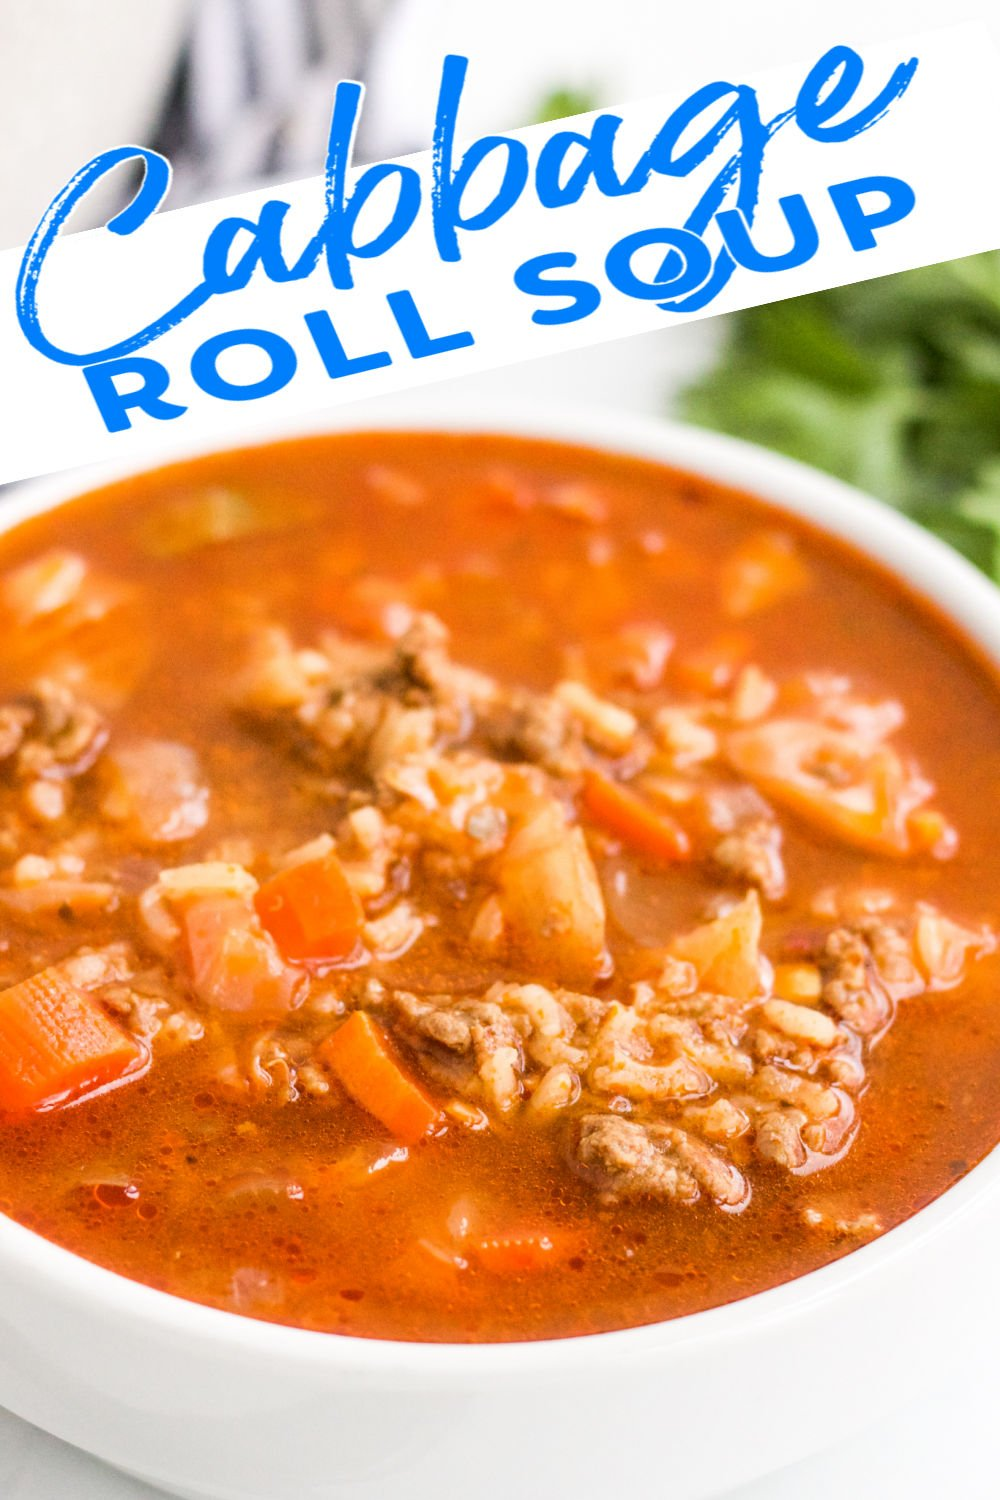 Easy Cabbage Roll Soup takes all the flavors you love from stuffed cabbage rolls but turns it into soup form! Full of flavor, filling, and simple, this unstuffed cabbage roll soup is sure to be a family favorite. | www.persnicketyplates.com #soup #cabbageroll #comfortfood #easyrecipe